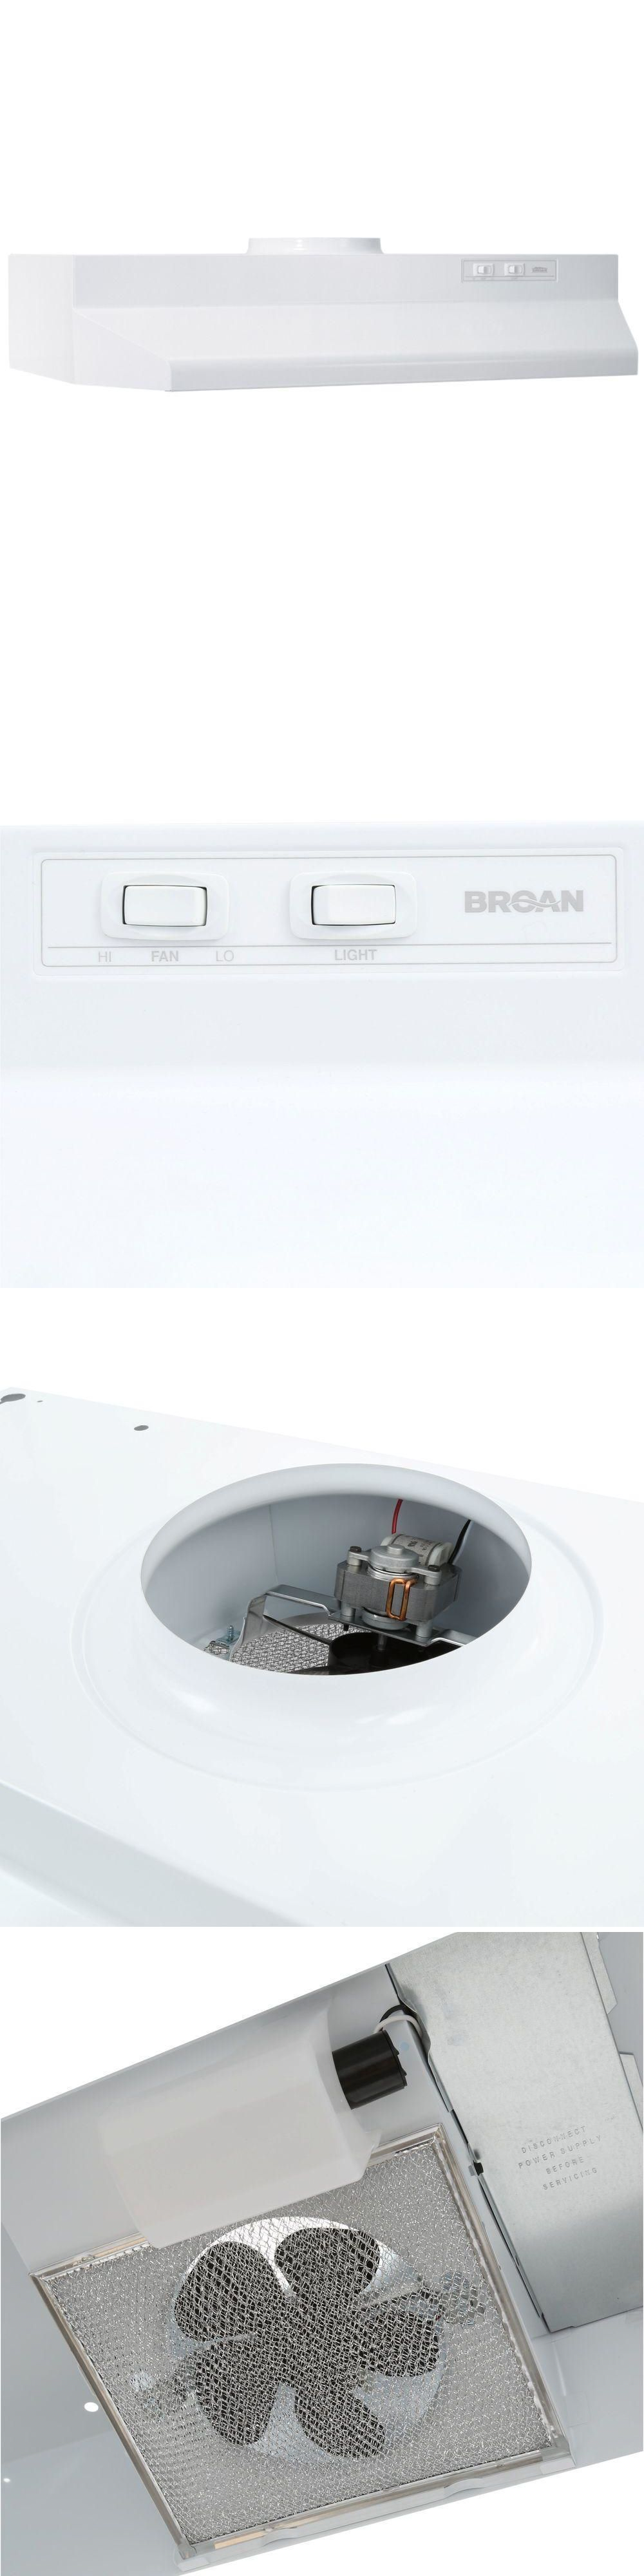 Range Hoods 71253 Broan 30 Range Hood Kitchen Stove Cooking Exhaust Fan Vent White 423001 Buy It Now Only 28 89 On Ebay Ra Broan Range Hoods Range Hood